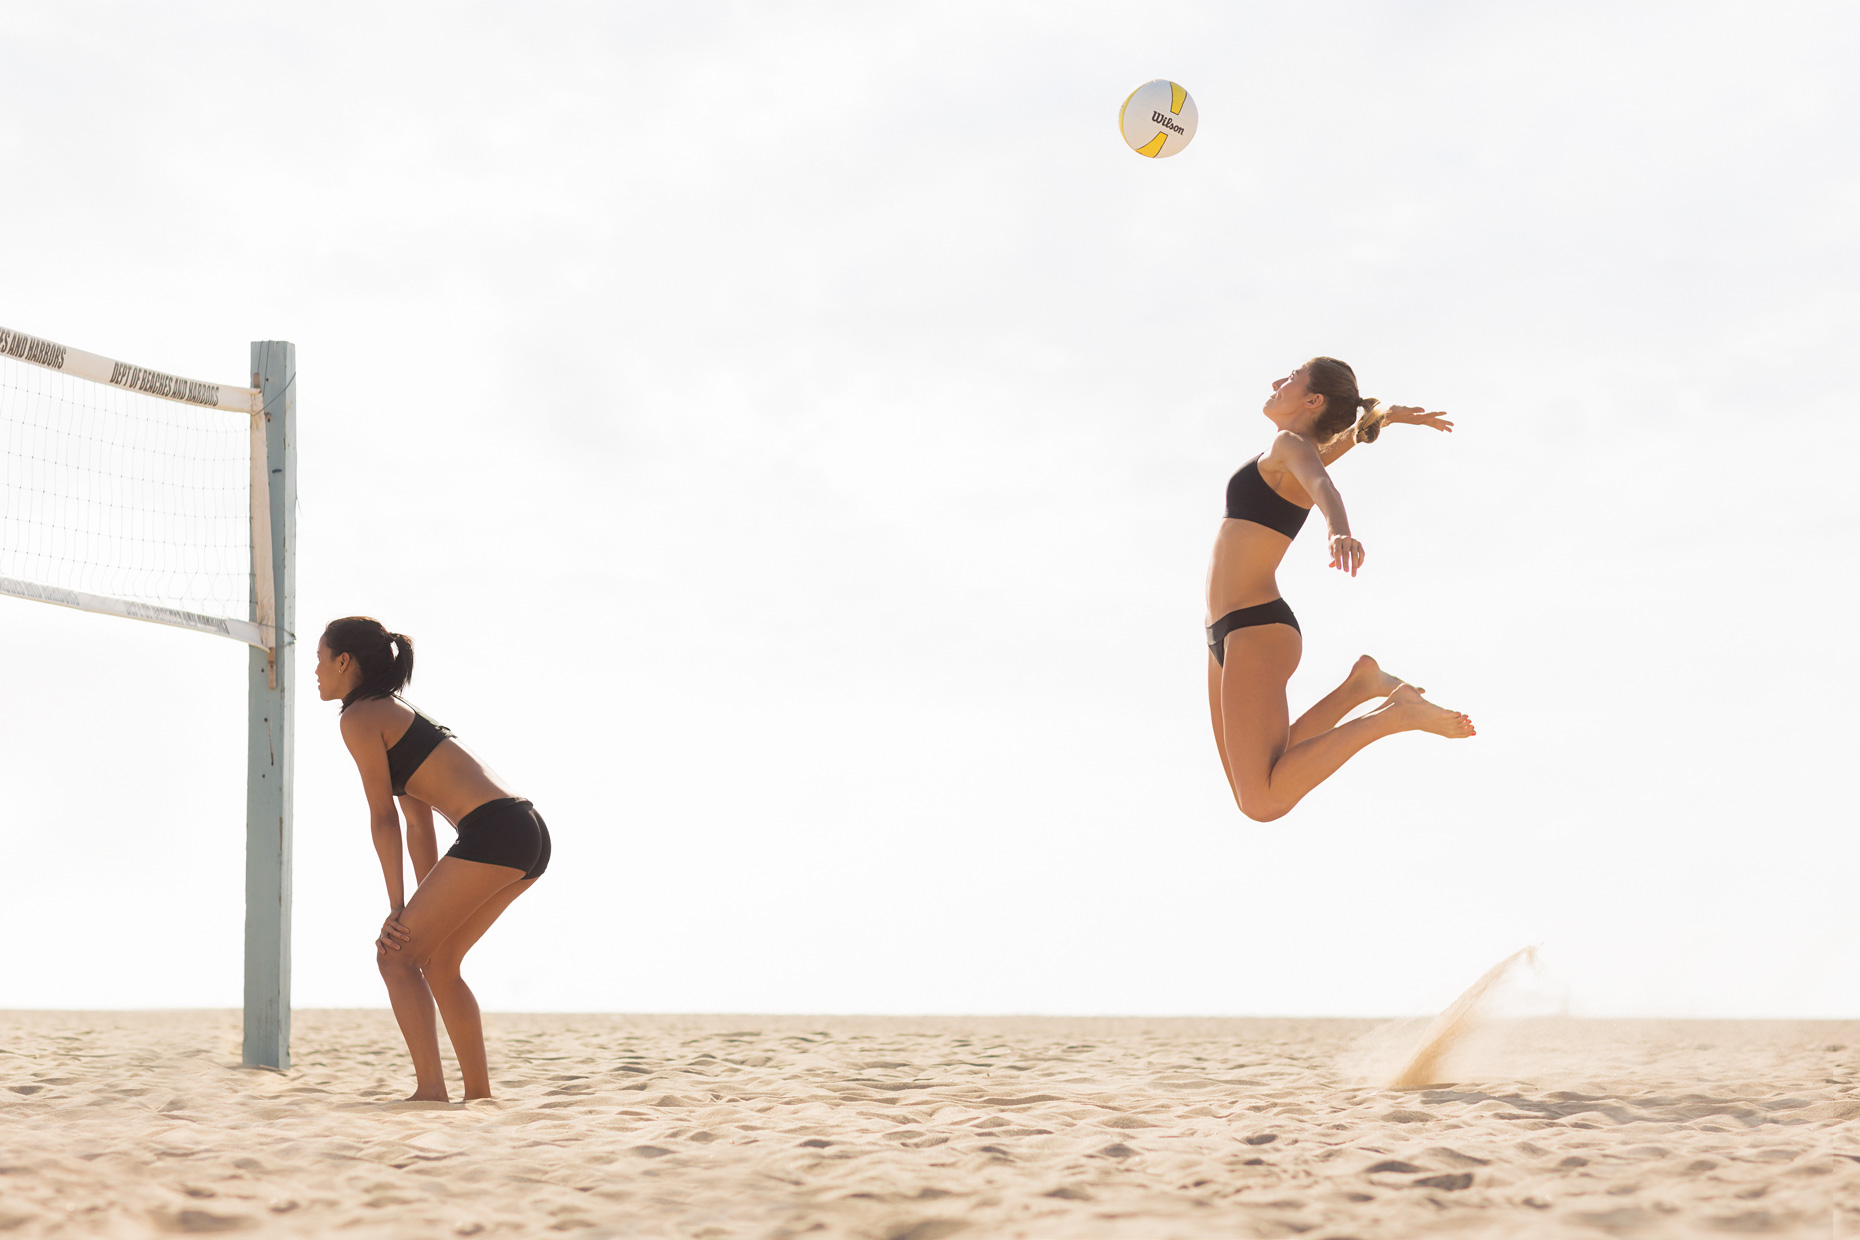 131104__SLU-8107-John Duarte_Sports_Venice_volleyball_sports_women_fitness_web.jpg